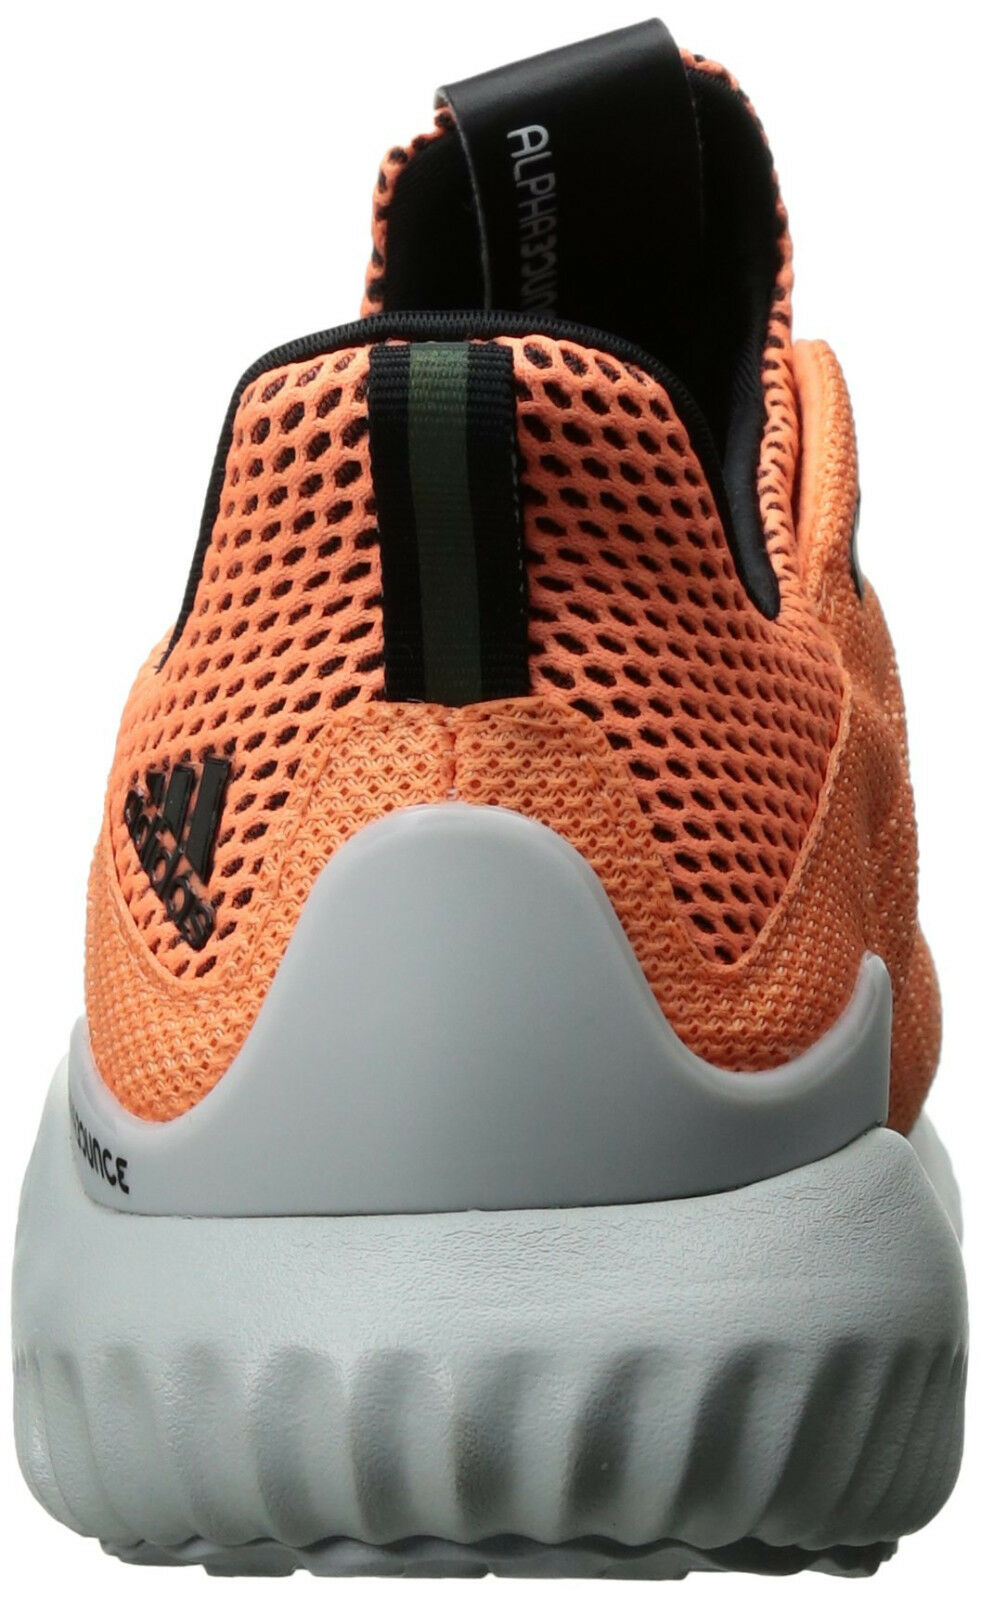 Womens ADIDAS ALPHABOUNCE 1 B39431 Womens Womens Womens Running shoes orange Sneakers NEW 6b2afe